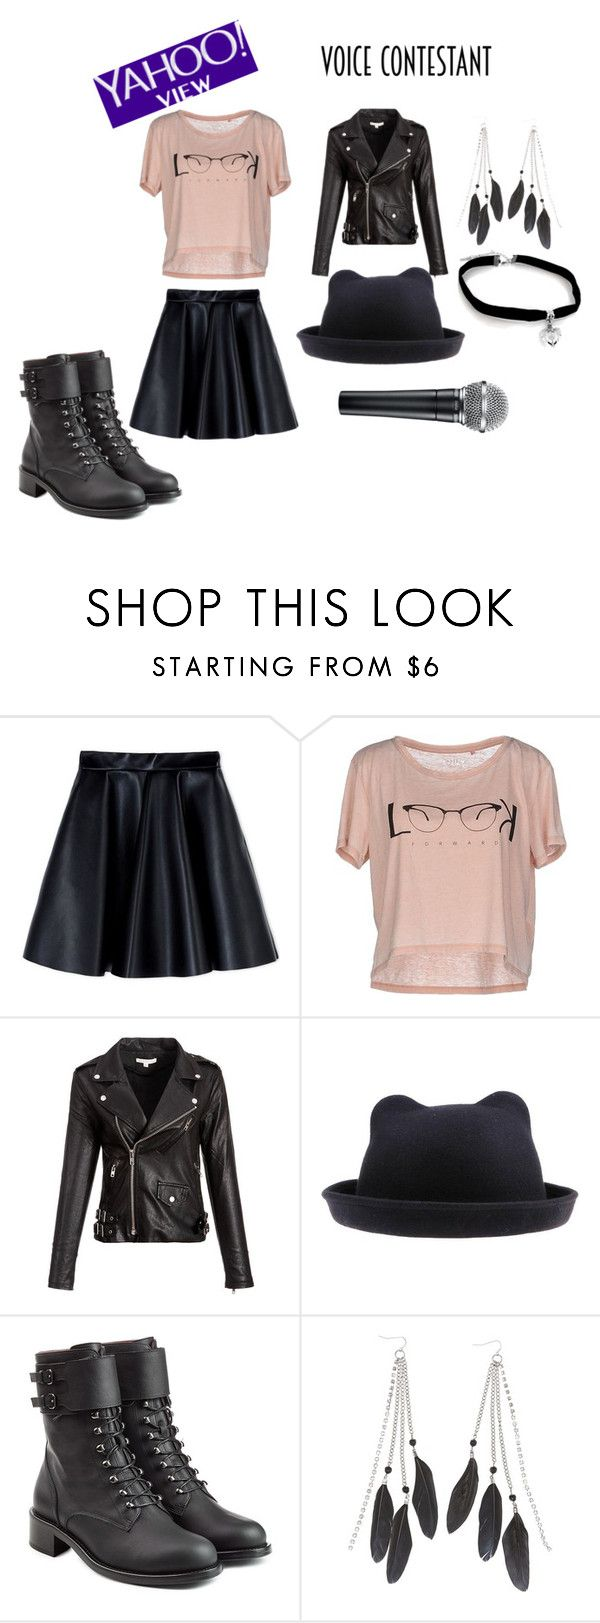 """Без названия #129"" by ashartyray on Polyvore featuring мода, MSGM, ONLY, Philosophy di Lorenzo Serafini, Charlotte Russe, thevoice и YahooView"